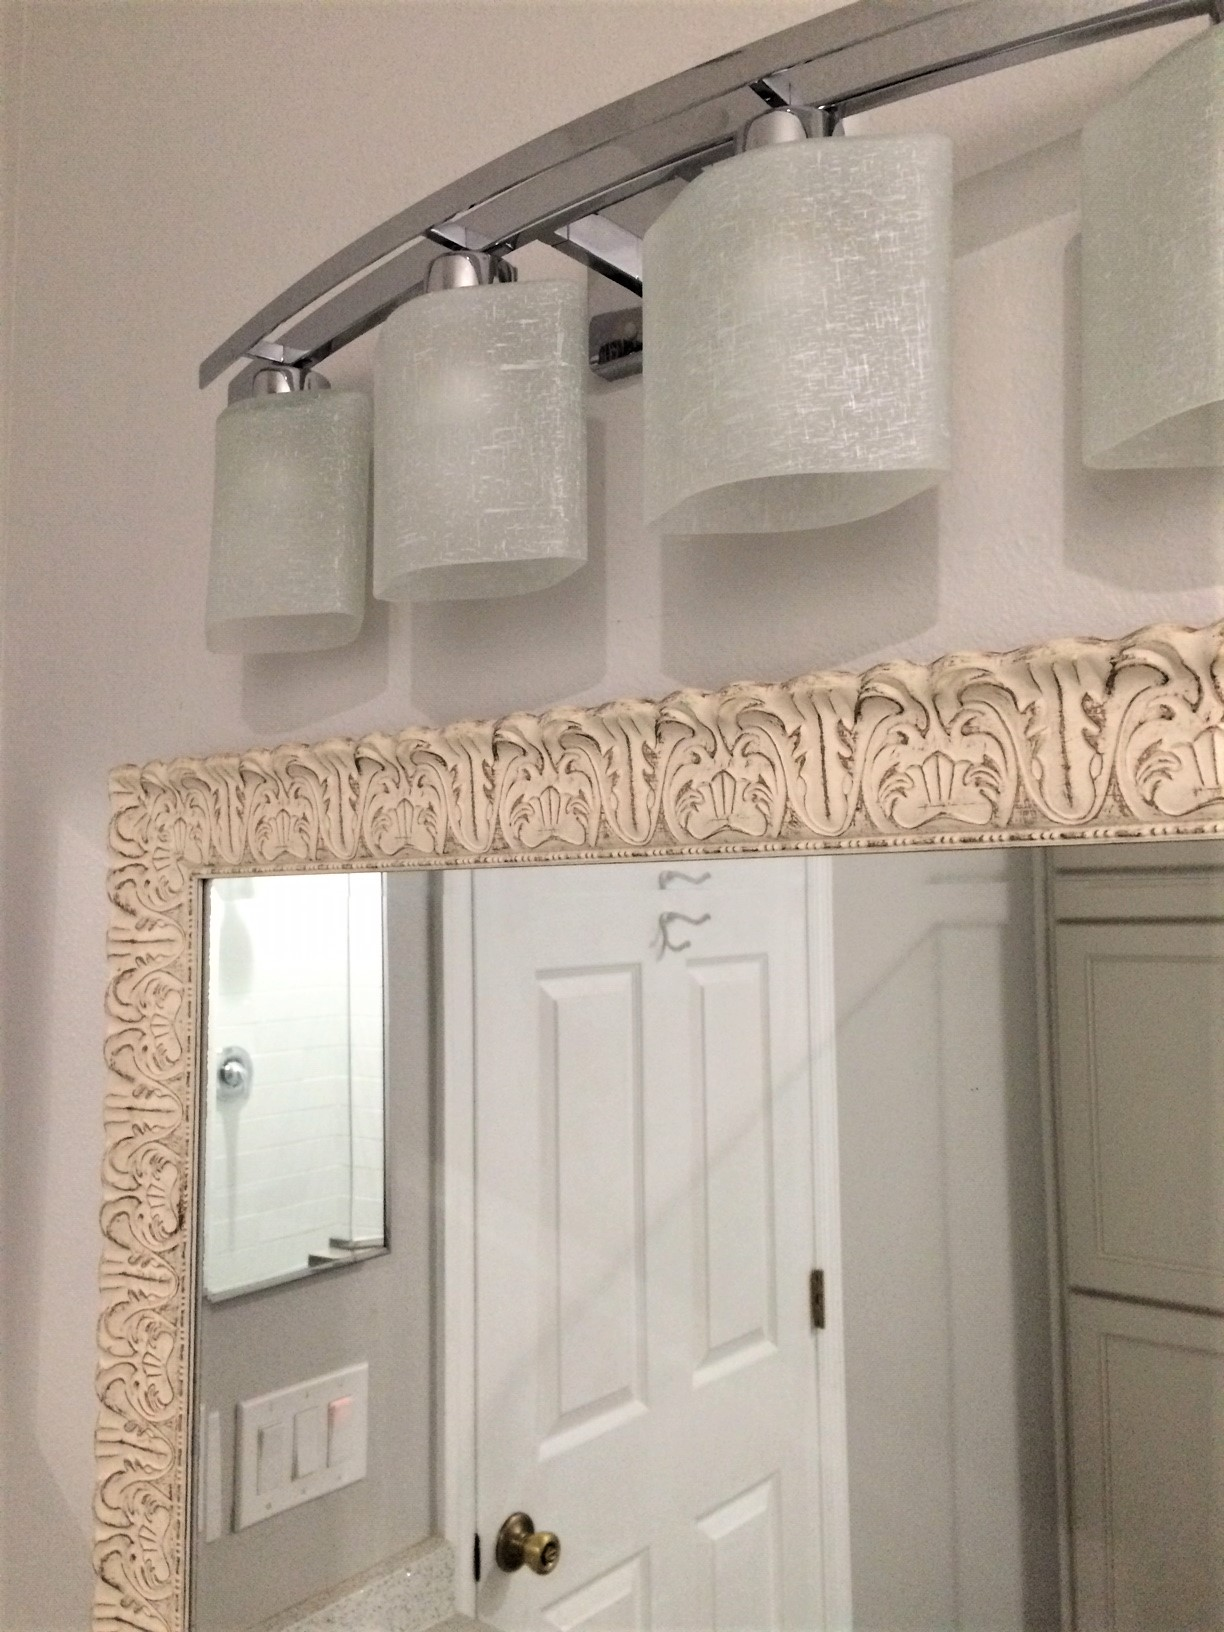 Long vanity mirror enhances the feeling of a larger bathroom.  Modern vanity light with silver finish to combine with the existing fixtures and parts finish